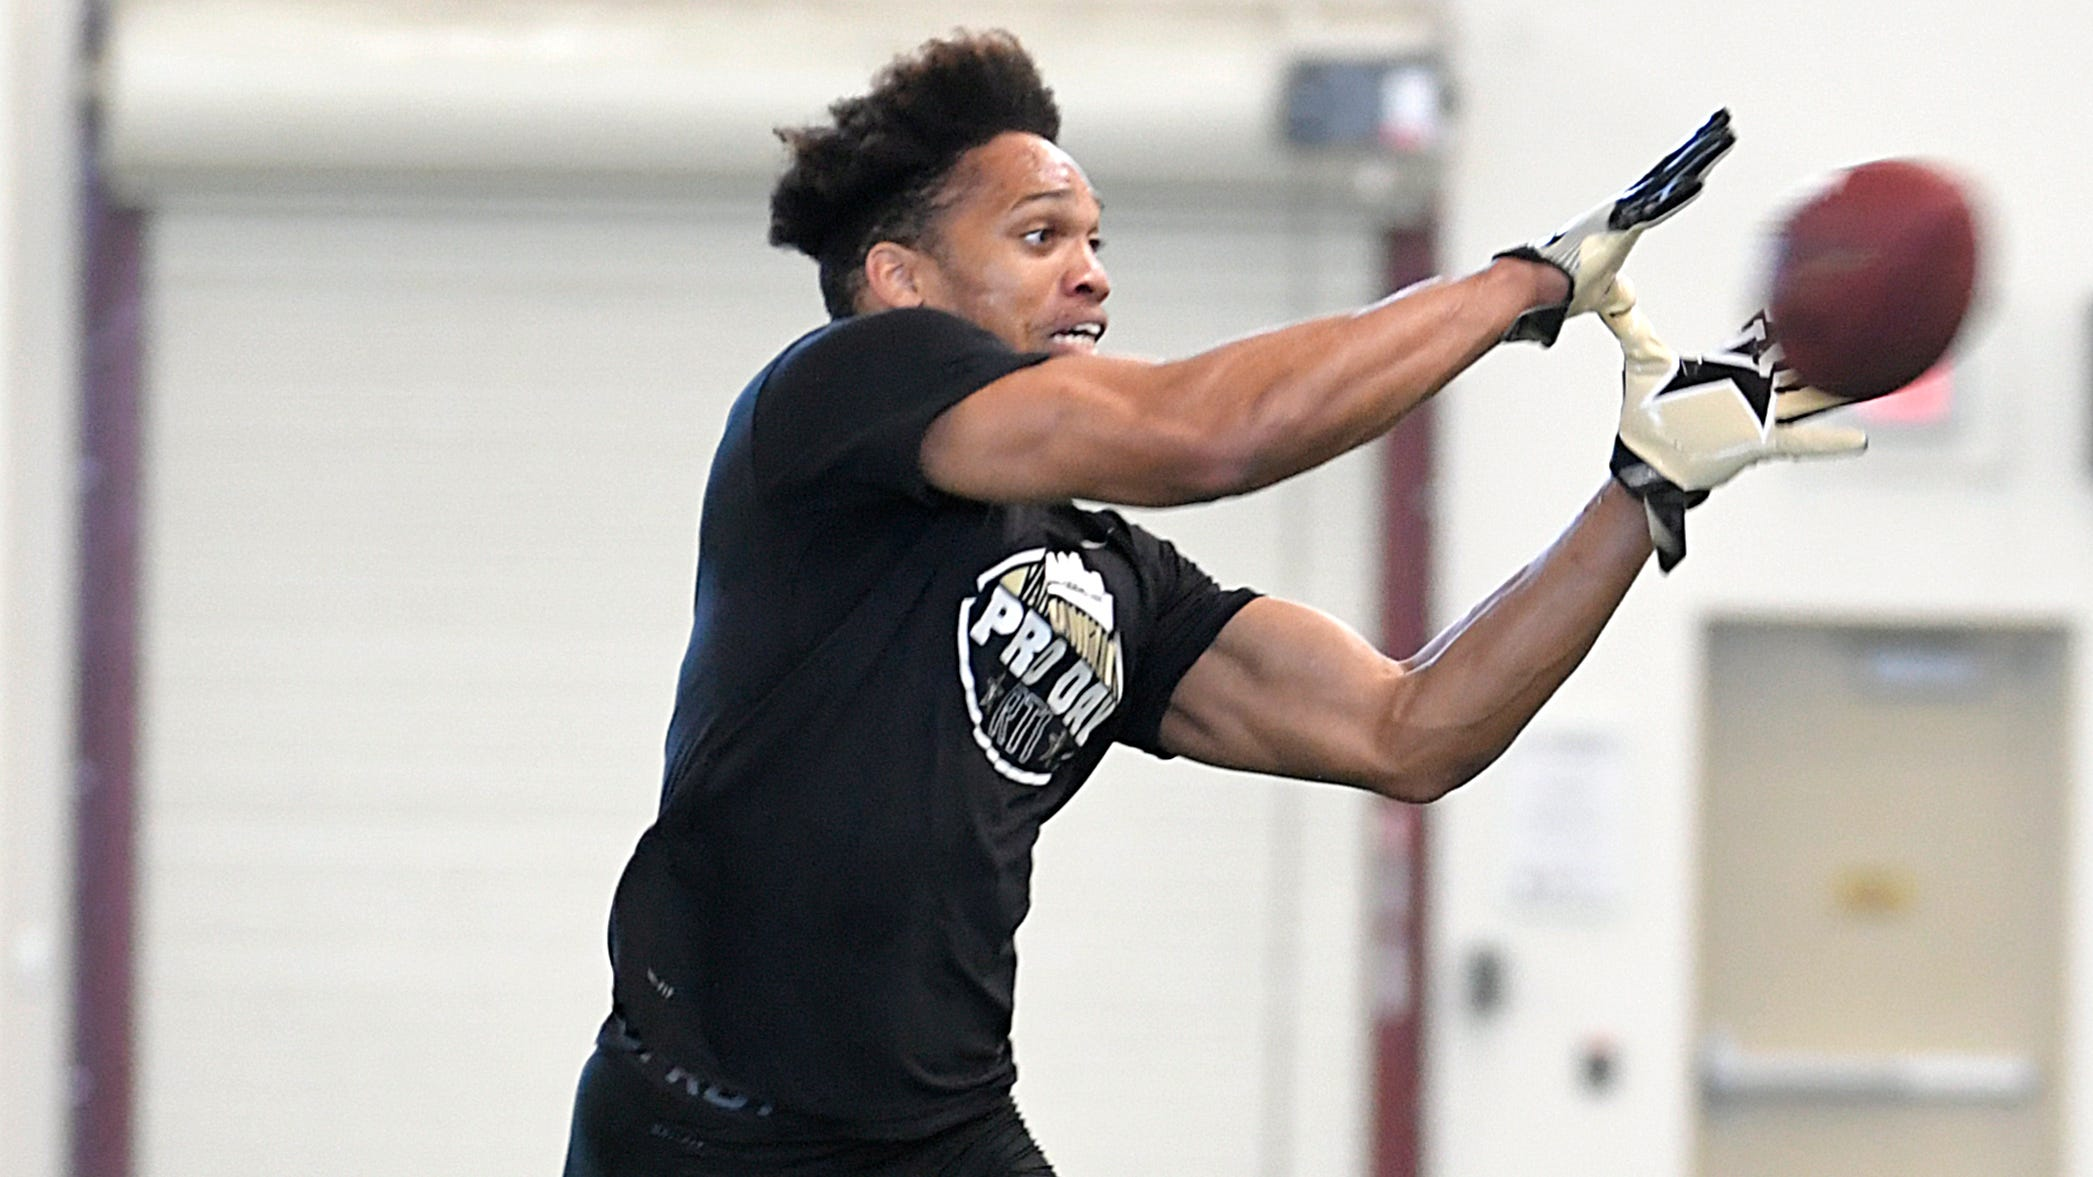 Vanderbilt safety LaDarius Wiley performs drills during NFL Pro Day in Nashville on Tuesday, March 12, 2019.